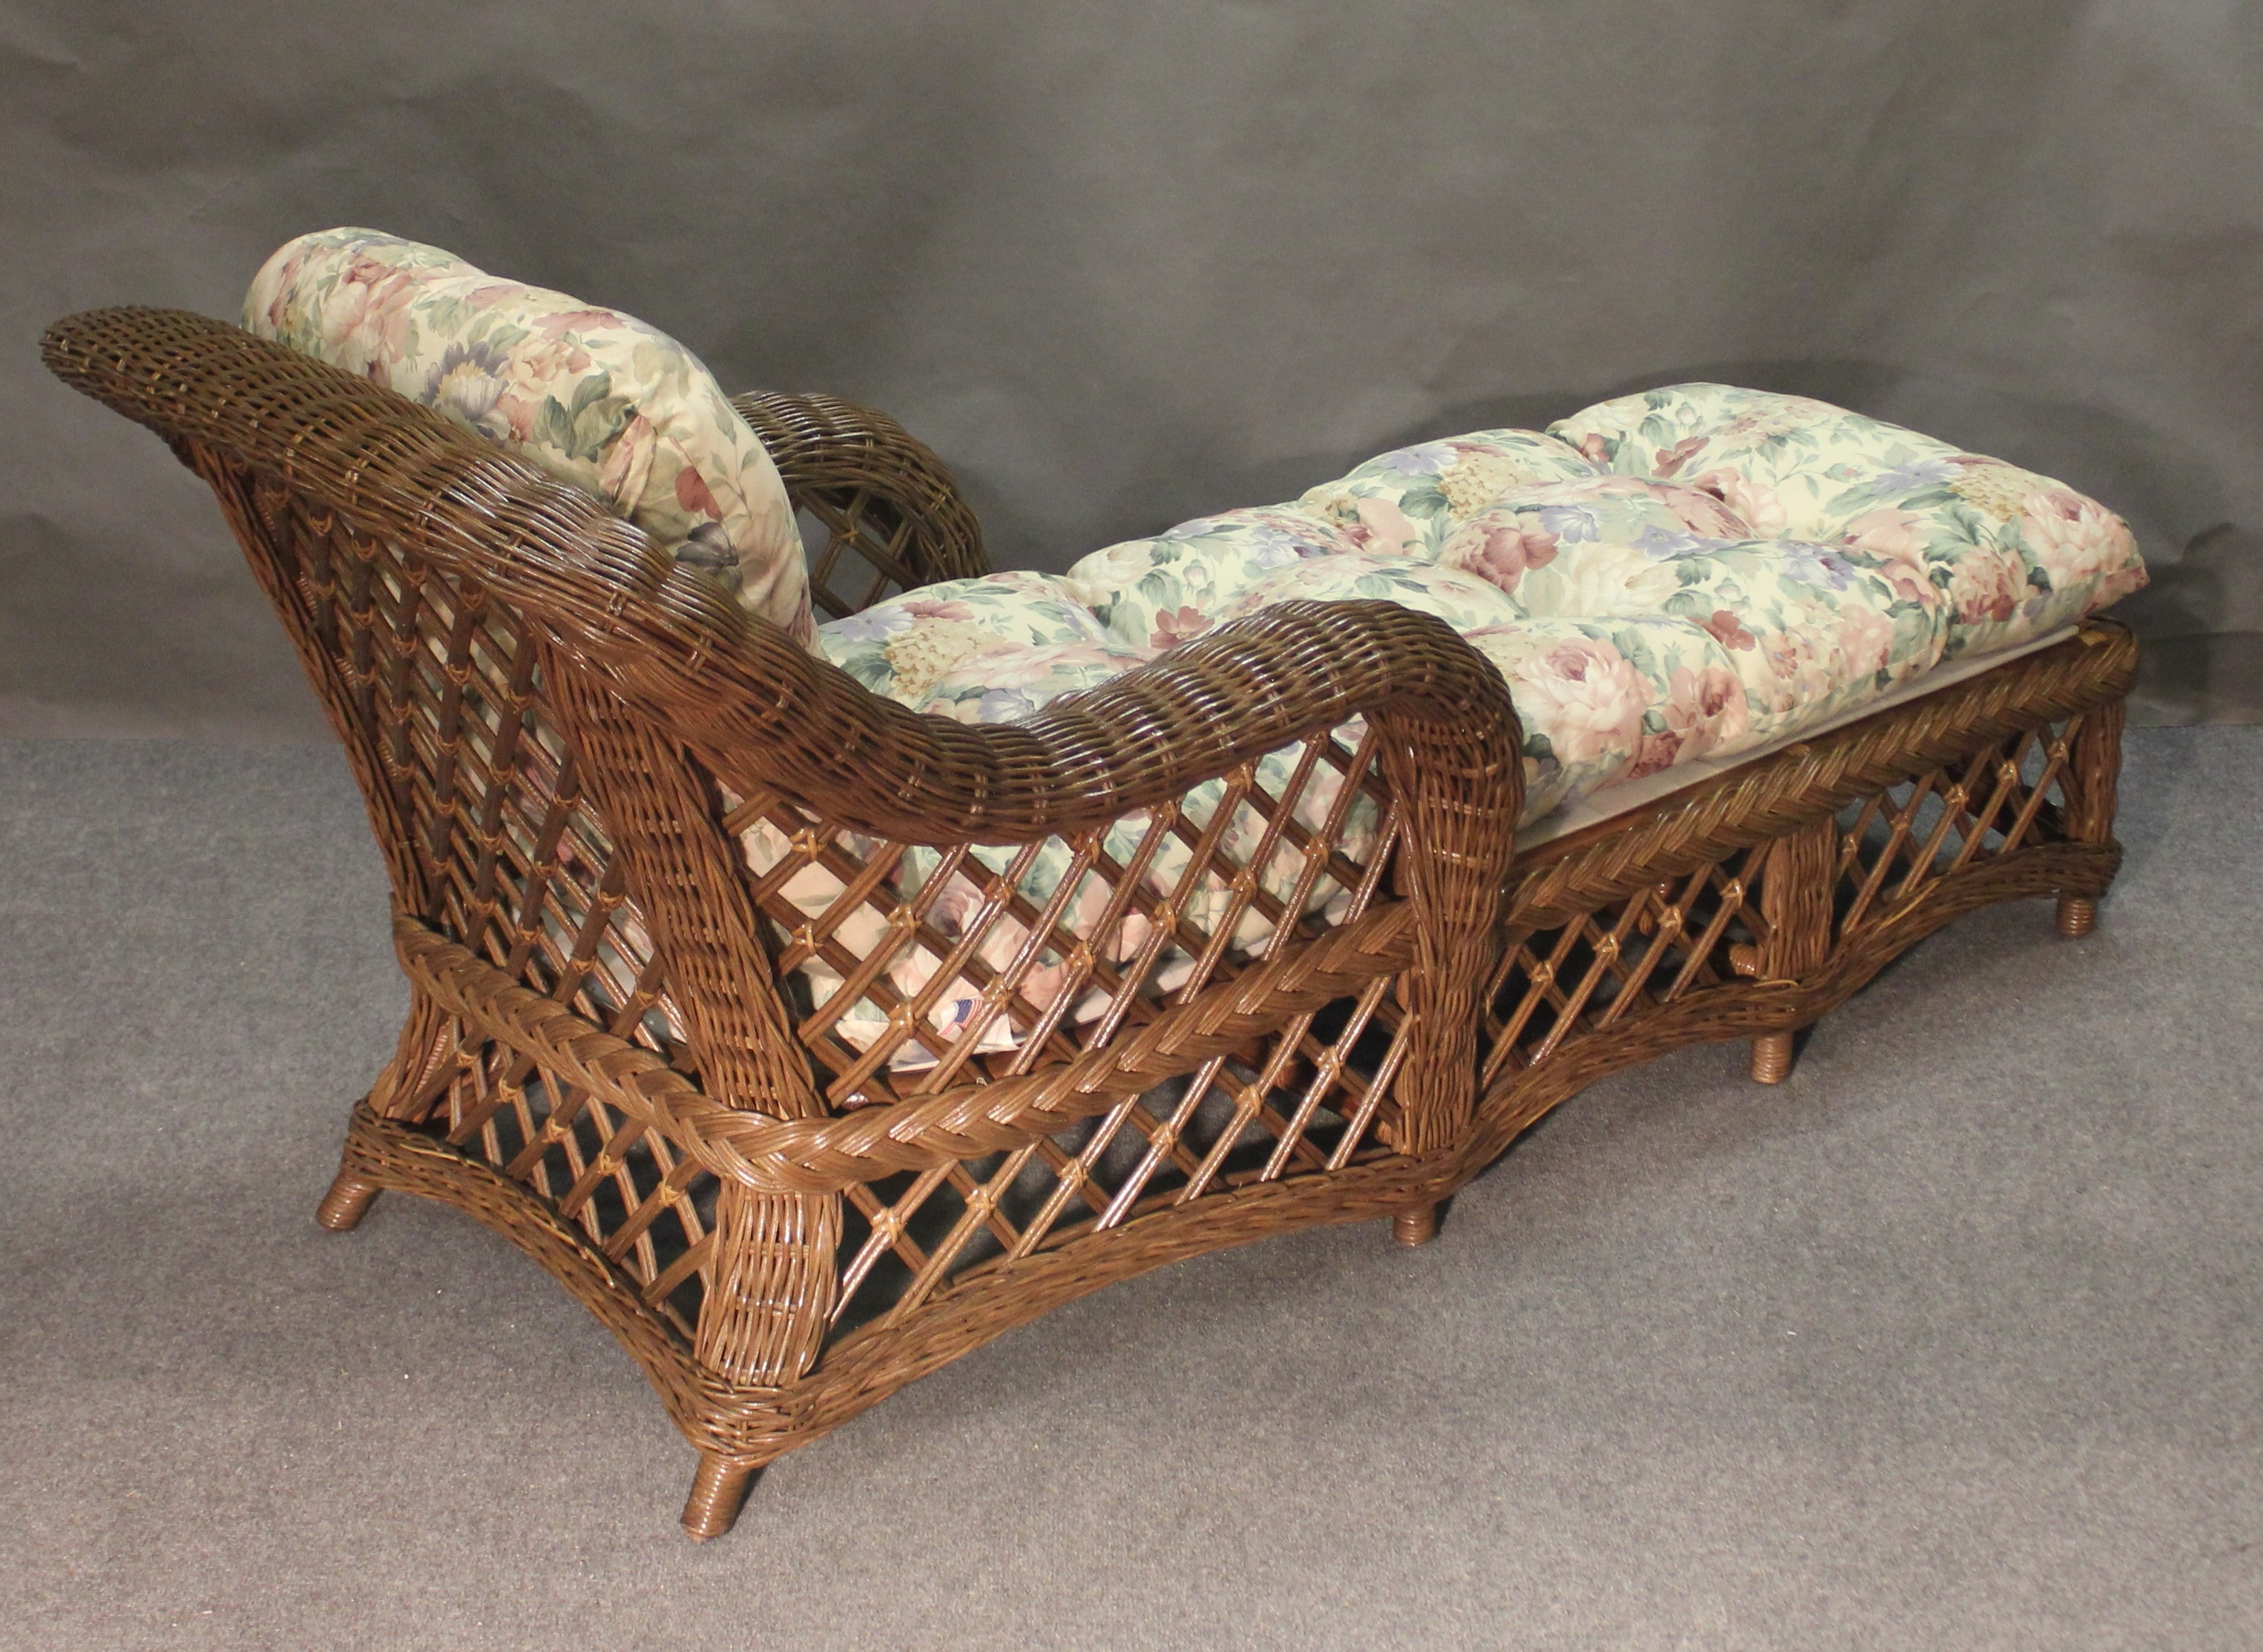 Latest Cape Cod Wicker Chaise Lounge, All About Wicker For Wicker Chaise Lounges (View 3 of 15)